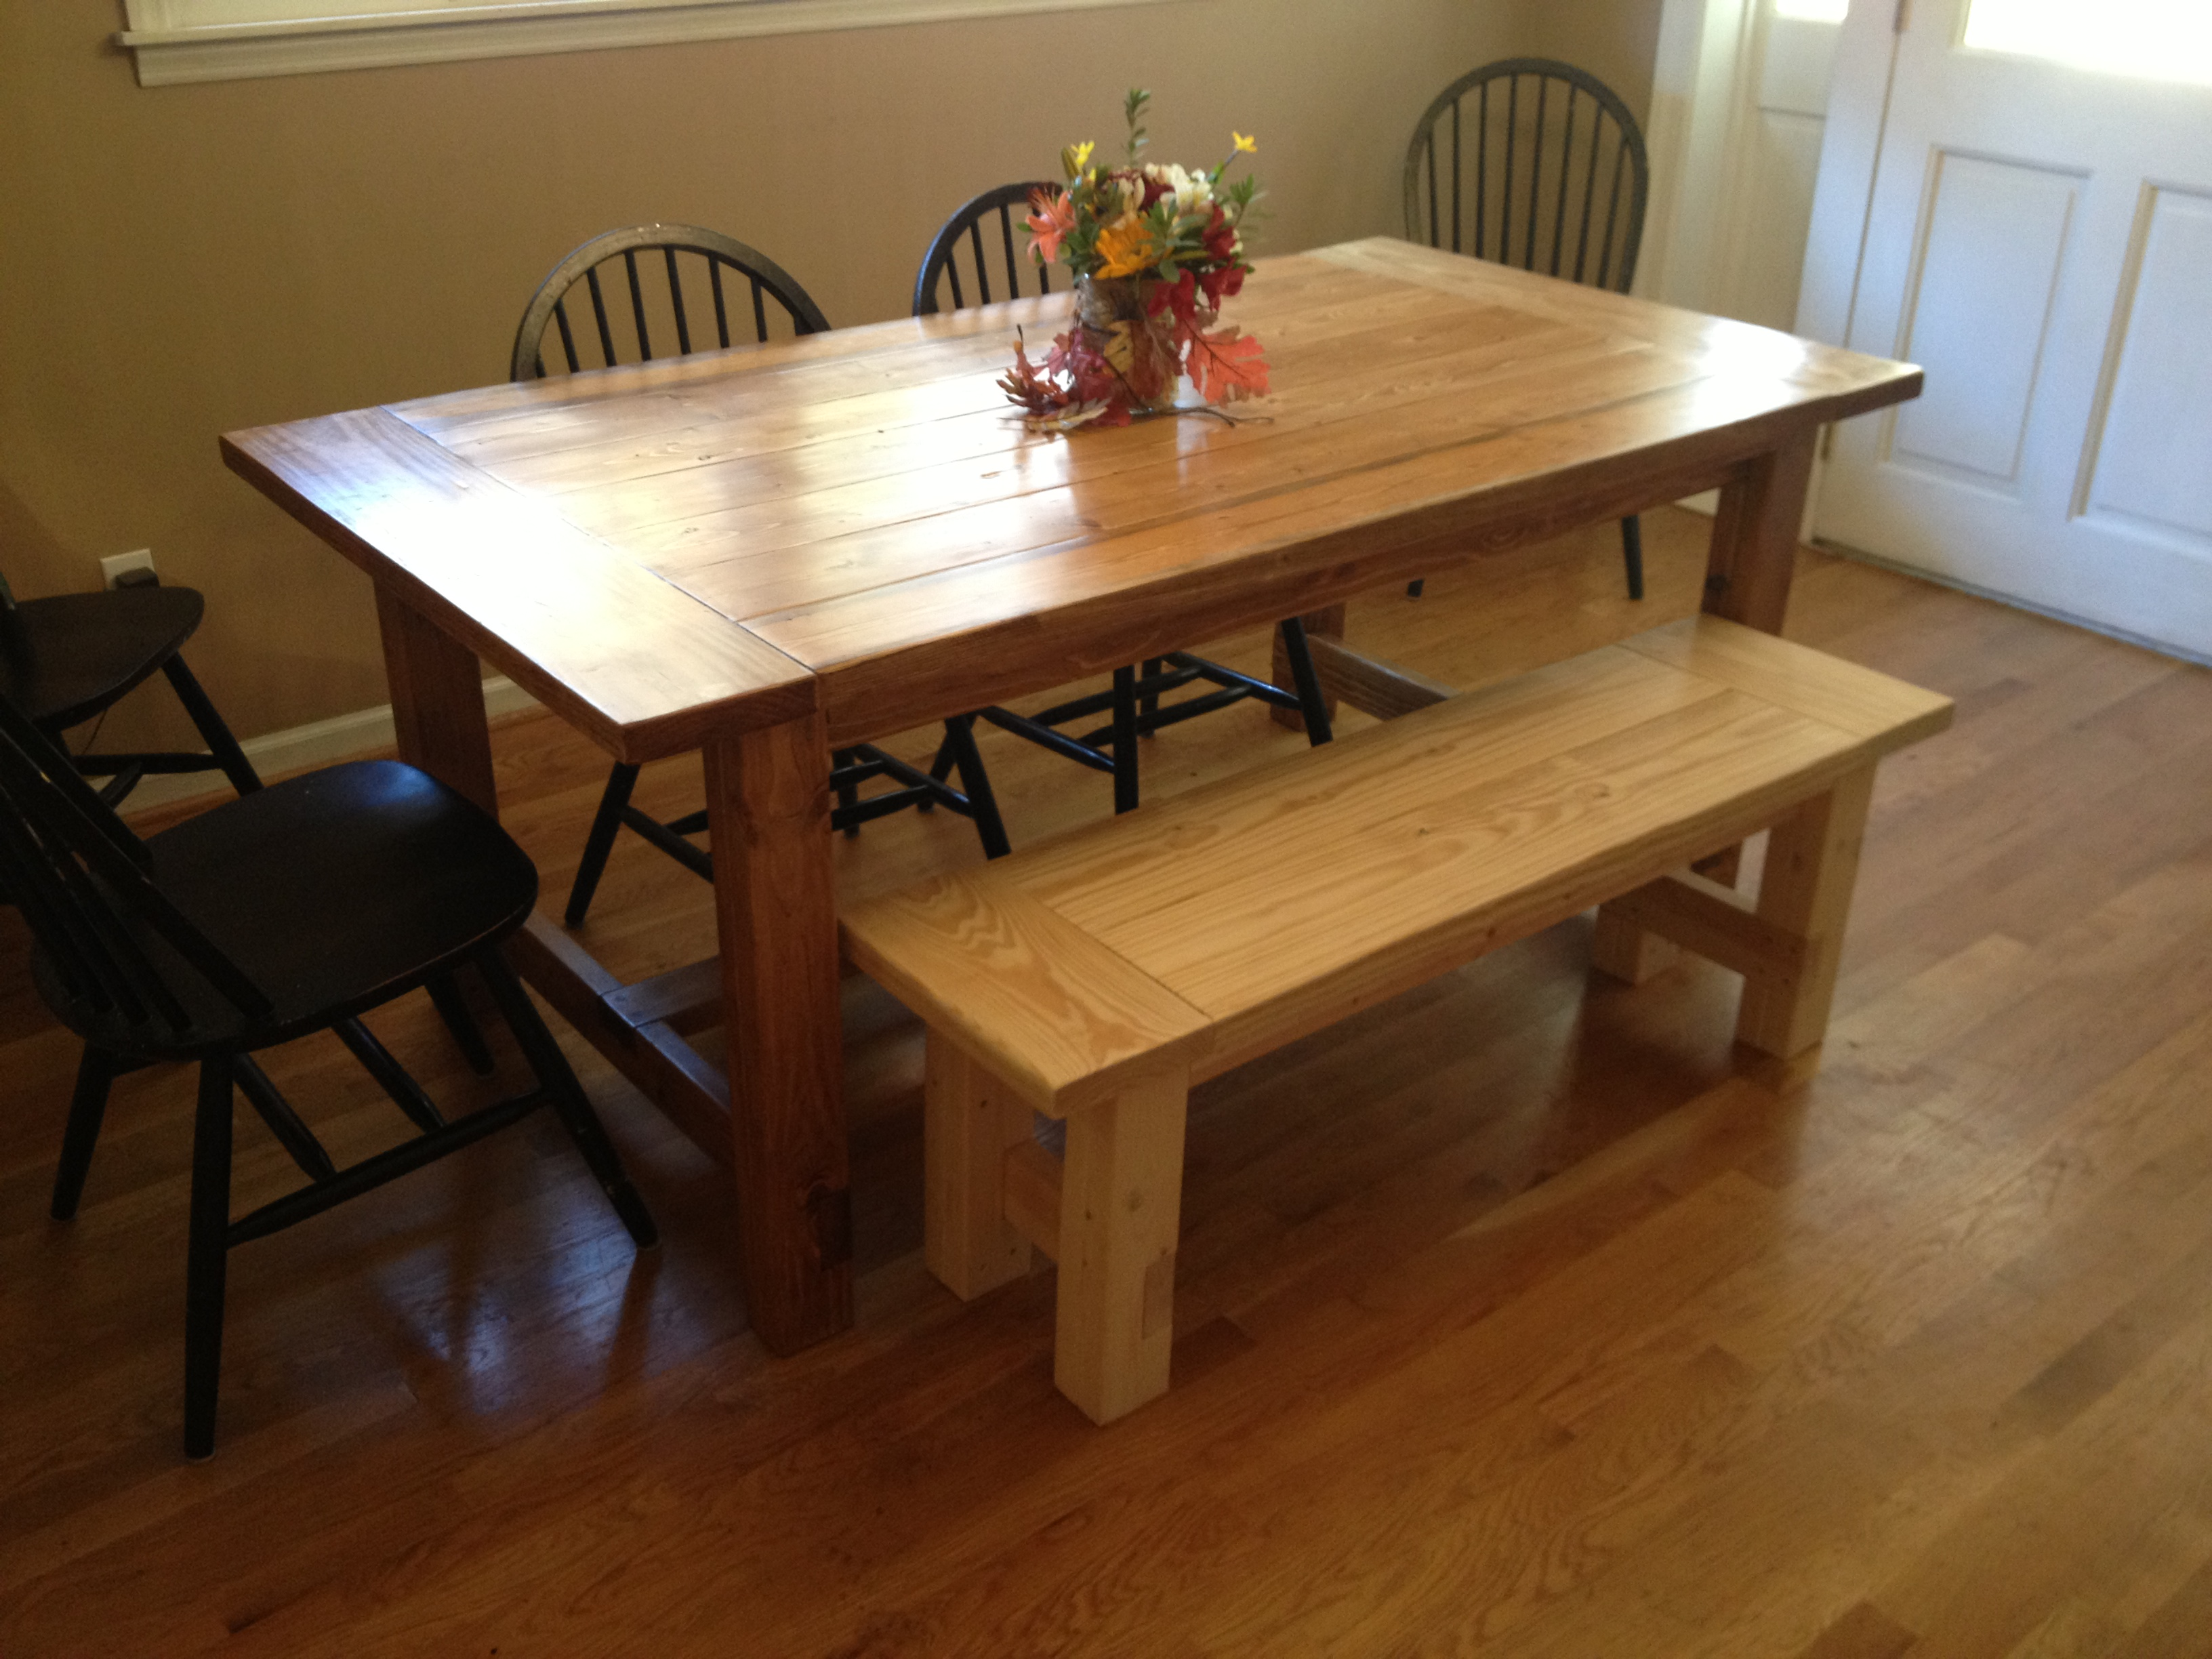 Kitchen Tables With Benches Free plans for making a rustic farmhouse table bench a lesson learned workwithnaturefo